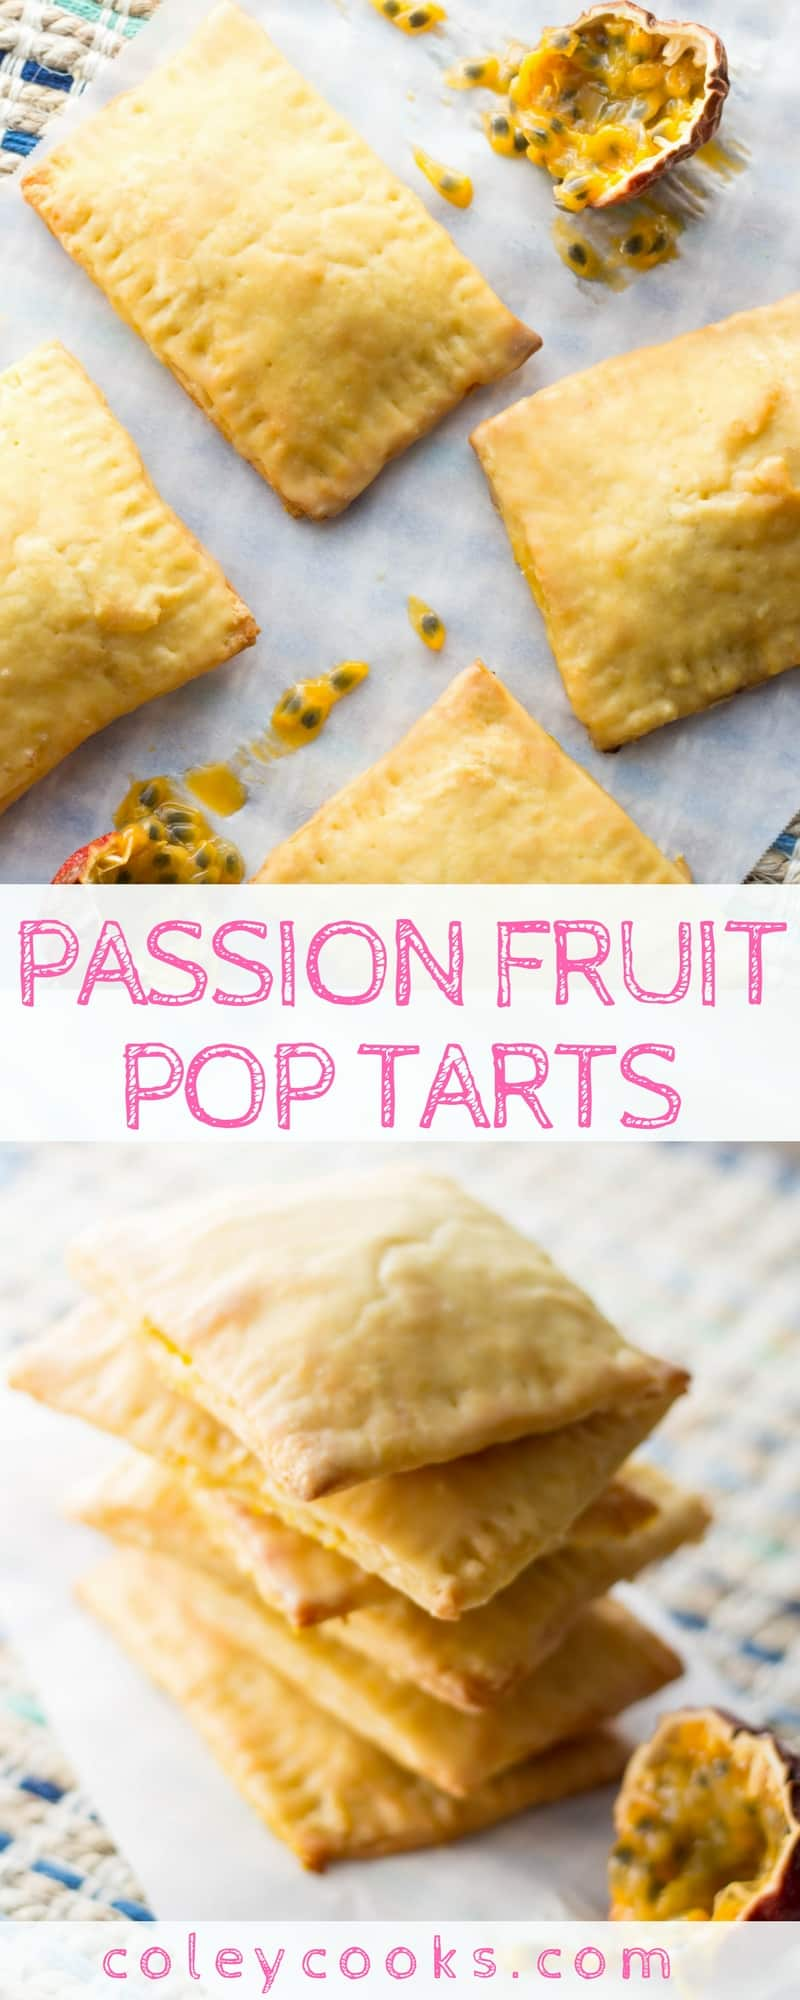 PASSIONFRUIT POP TARTS | Flaky pastries filled with tangy passionfruit curd. This quirky tropical pastry makes an unexpected addition to brunch or makes a fun dessert! | ColeyCooks.com